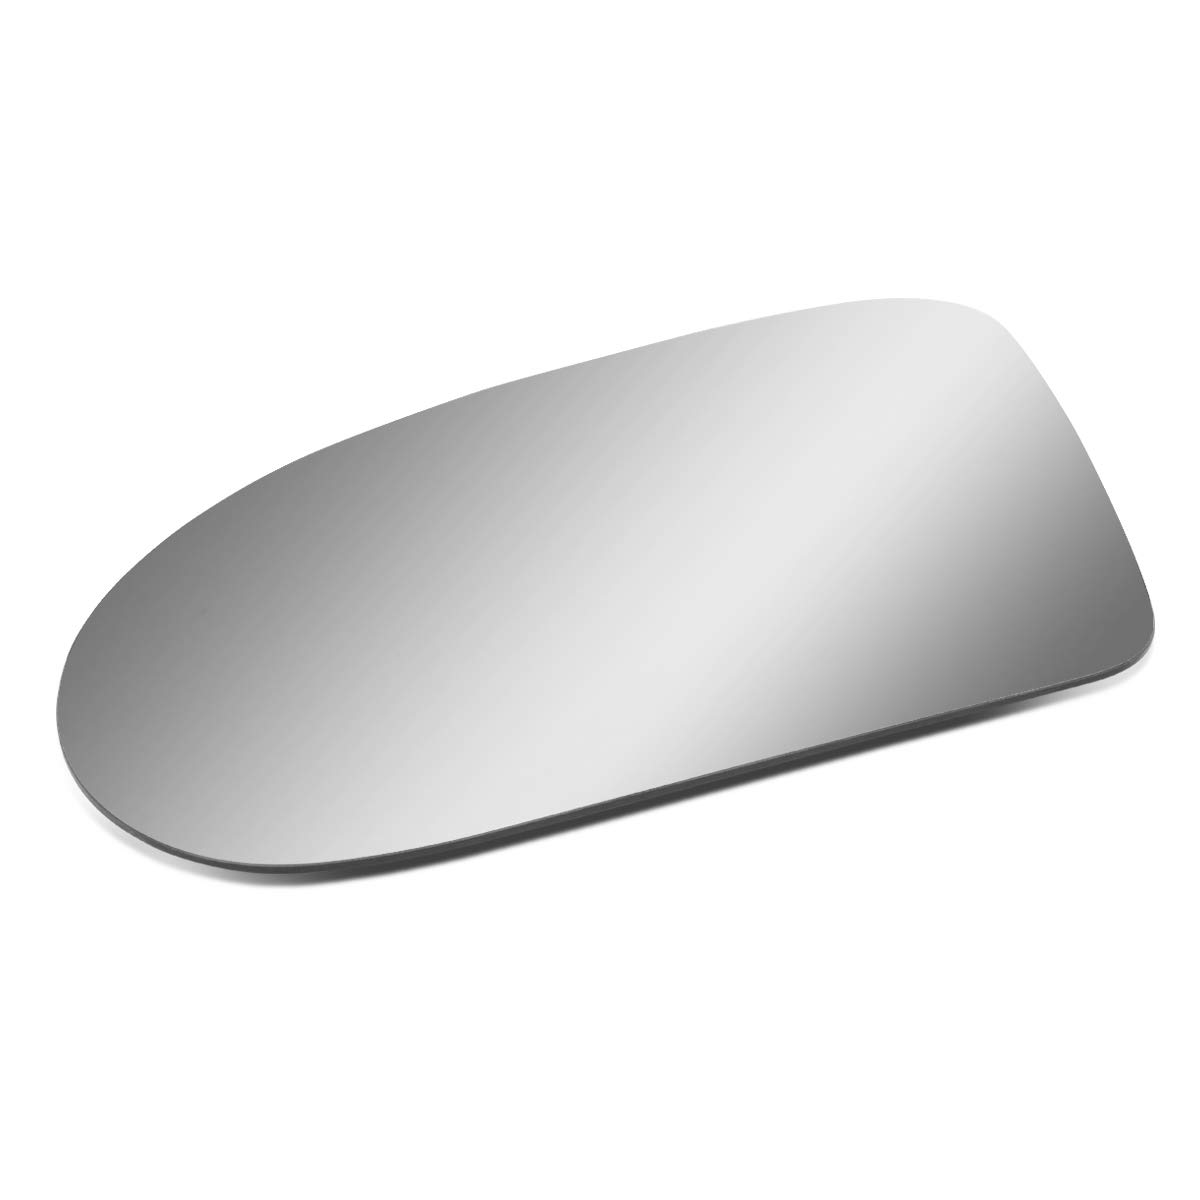 Driver//Left Side Door Rear View Mirror Glass Lens Replacement for 1992-1999 Buick Lesaber//Oldsmobile Regency//88//98